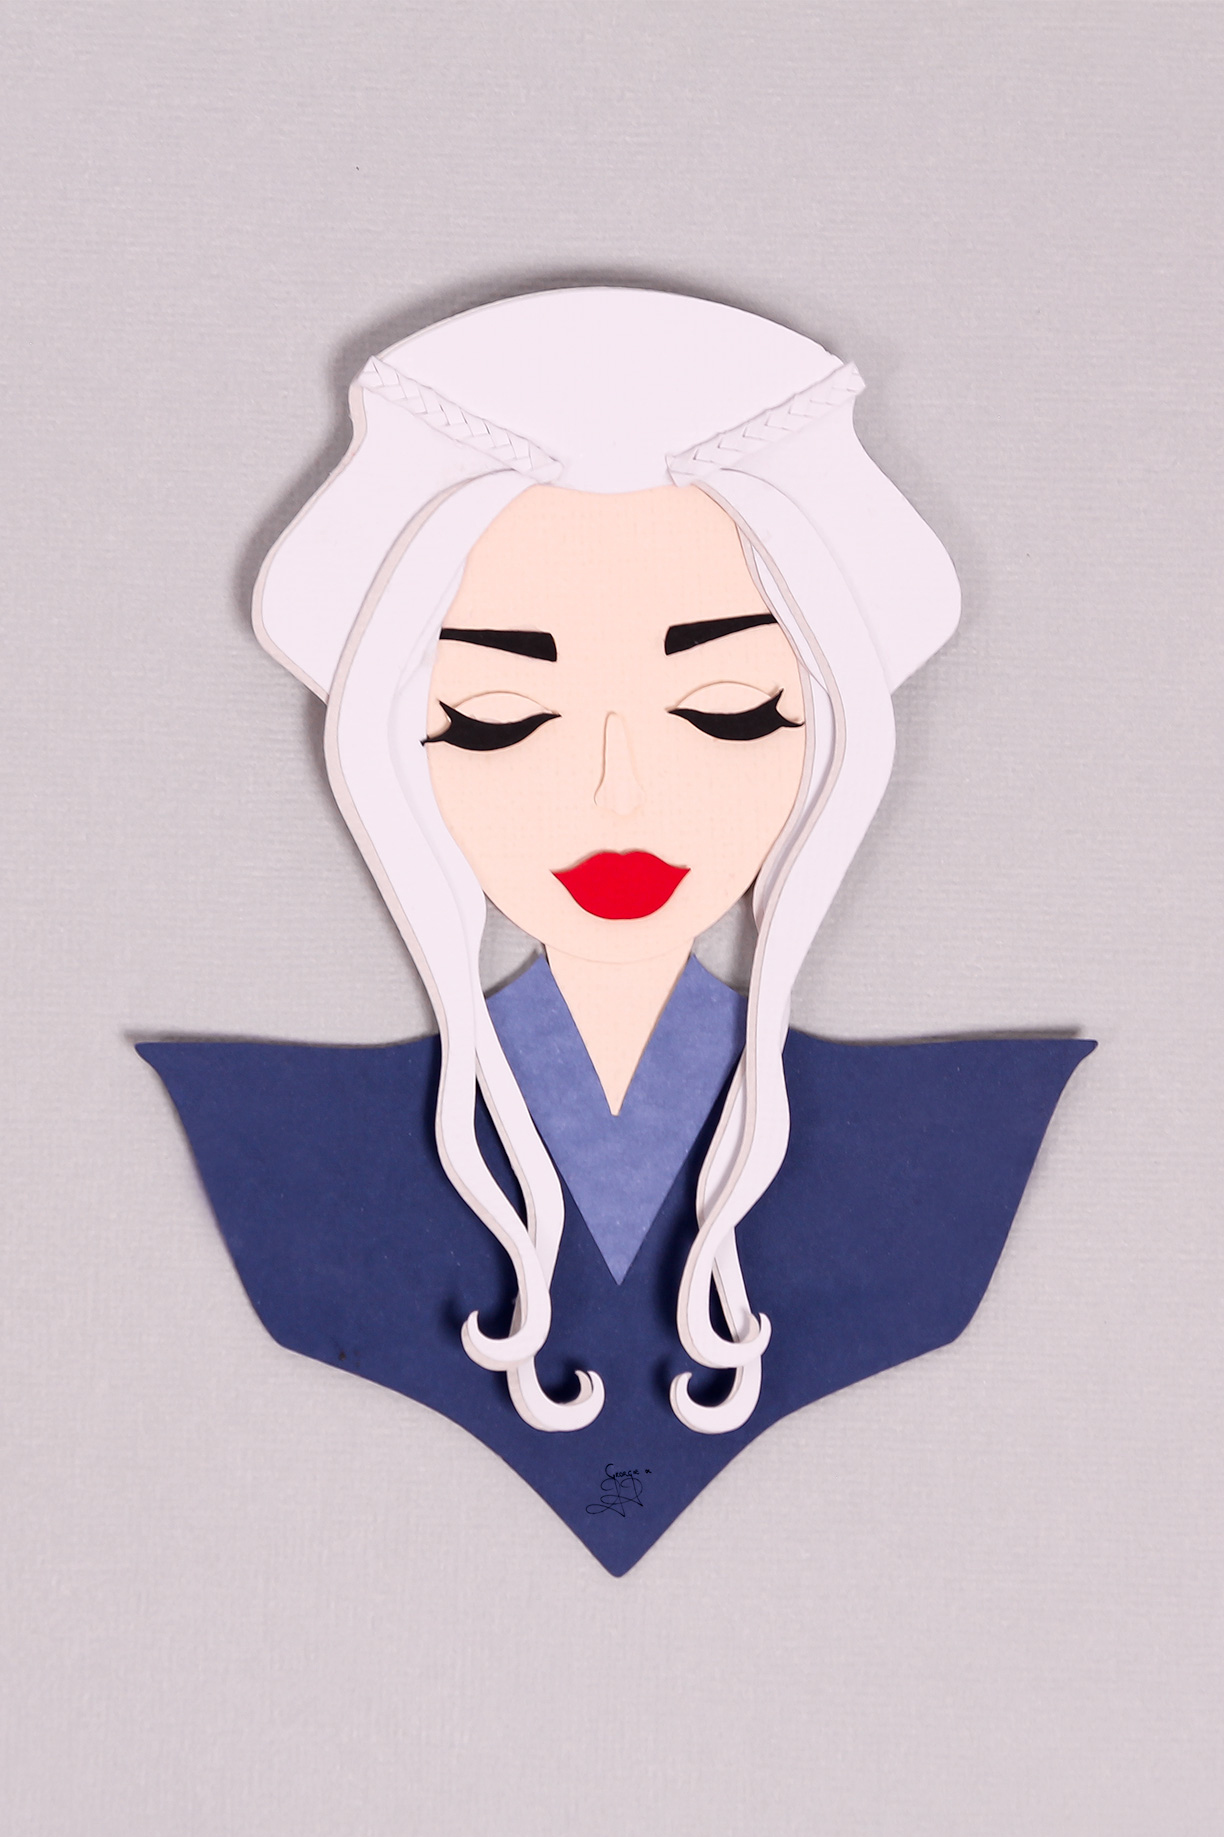 Daenerys Targaryen paper cut illustration details | Georgie St Clair, stop motion animation